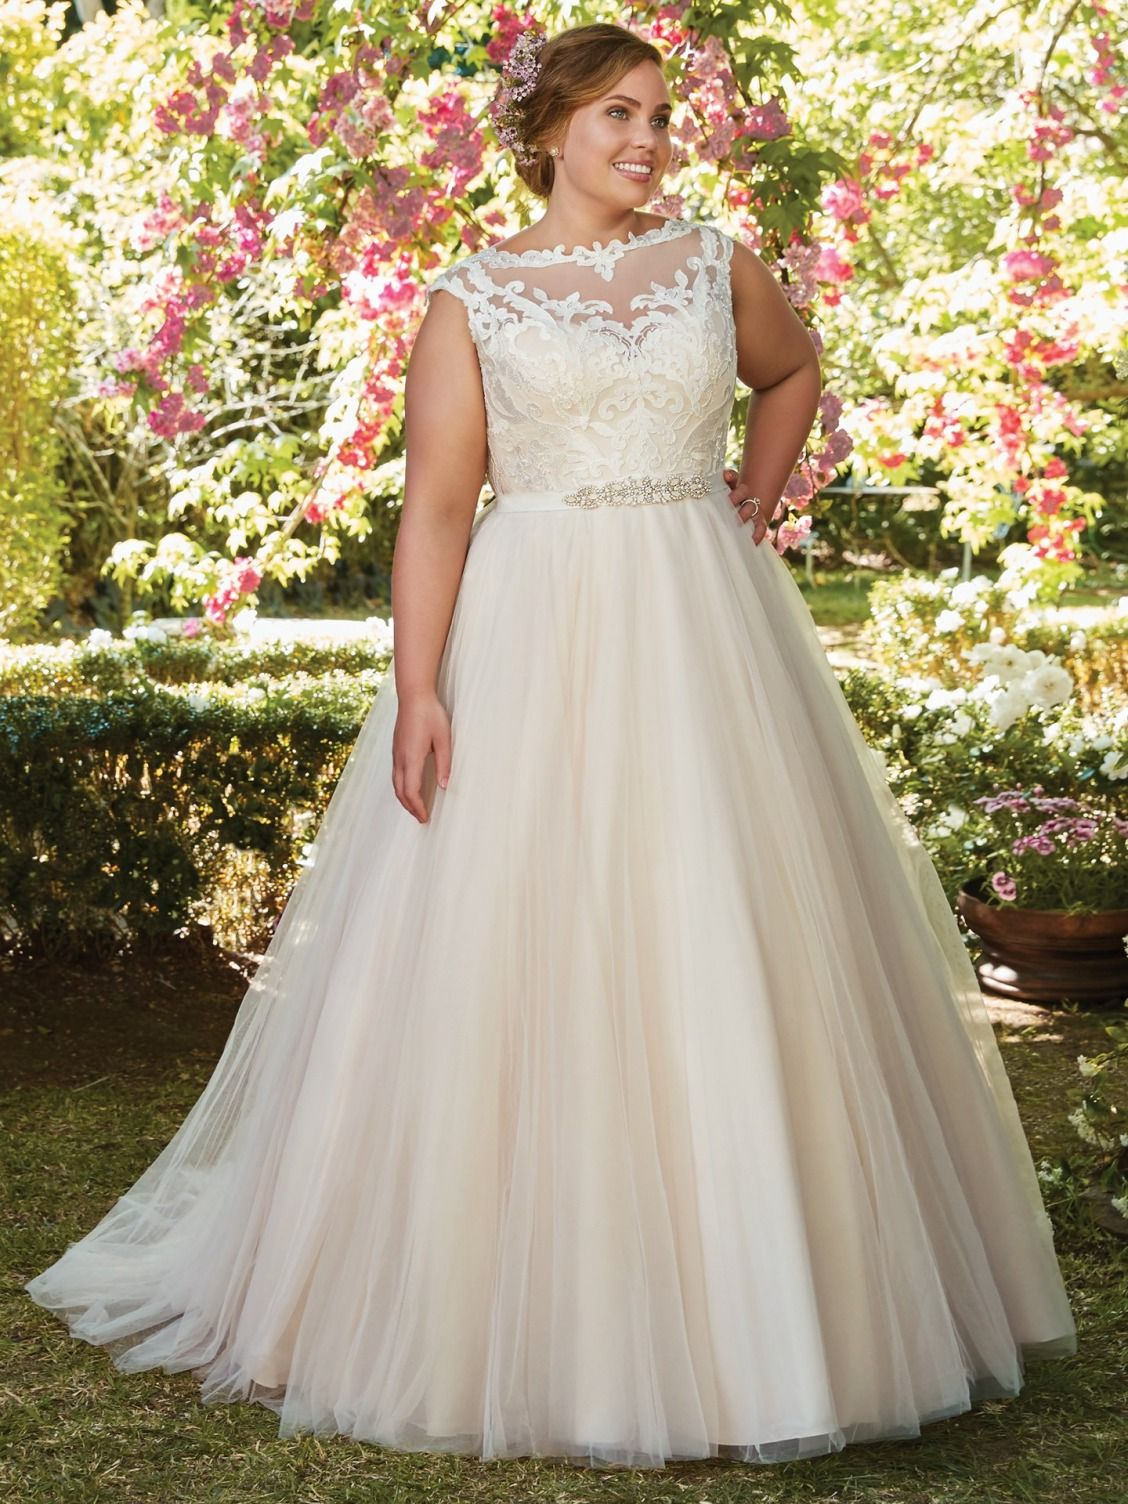 CARRIE - Rebecca Ingram. Charming and romantic, this tulle ballgown features lace appliqués that cascade over the bodice, illusion bateau neckline, and illusion back. Finished with covered buttons and zipper closure. Detachable beaded belt on grosgrain ribbon sold separately.